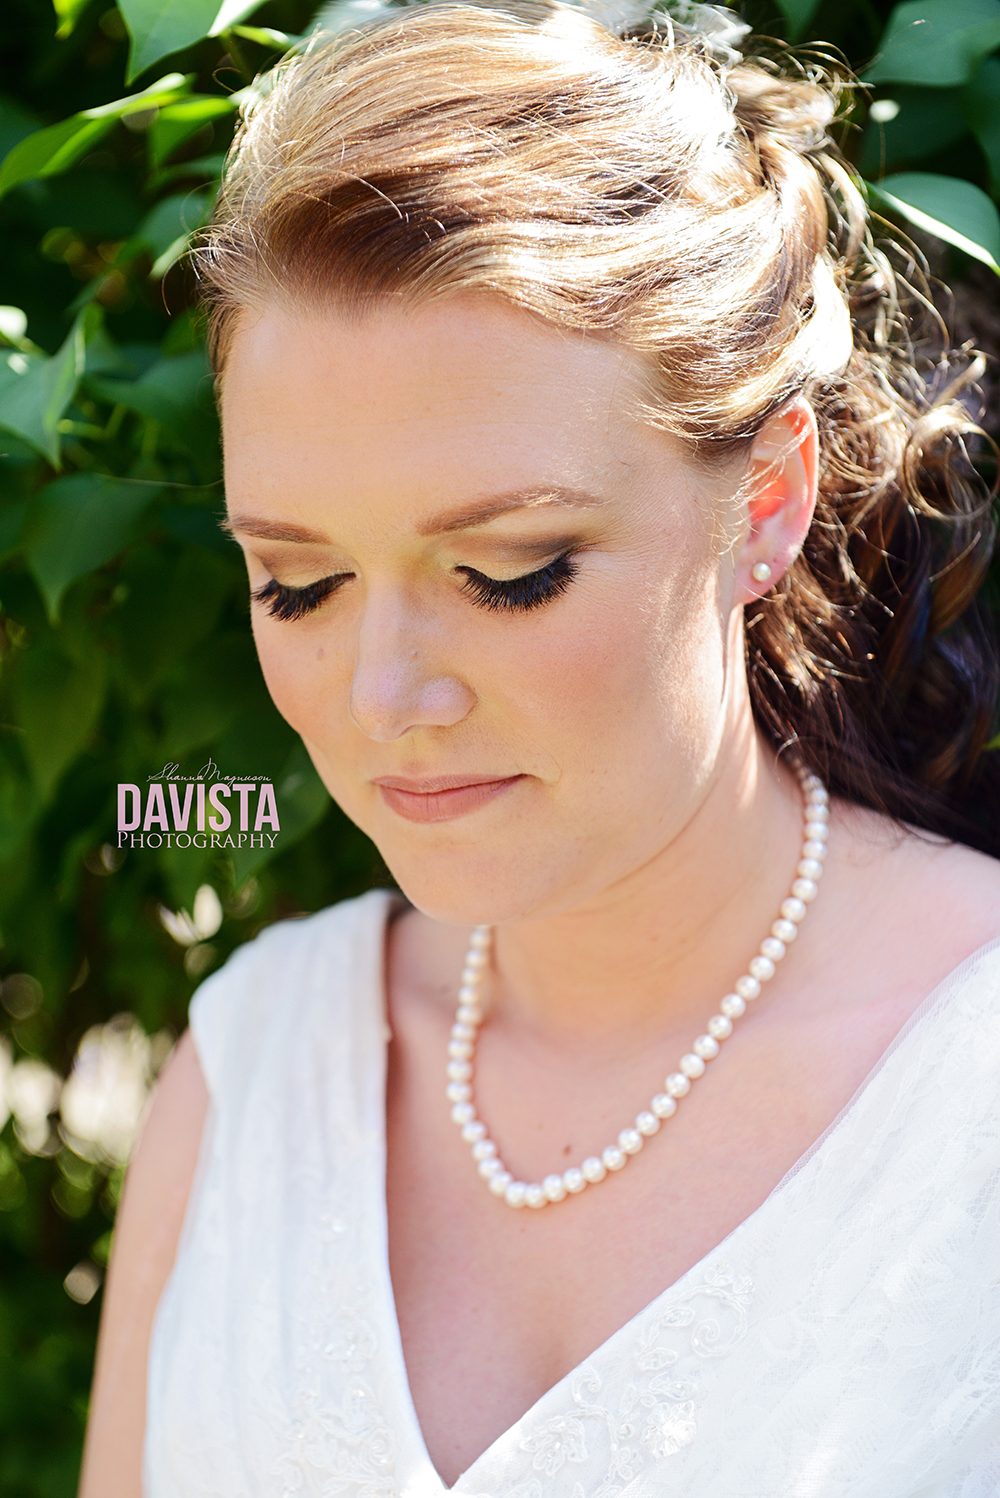 gorgeous bridal portraits in pearls